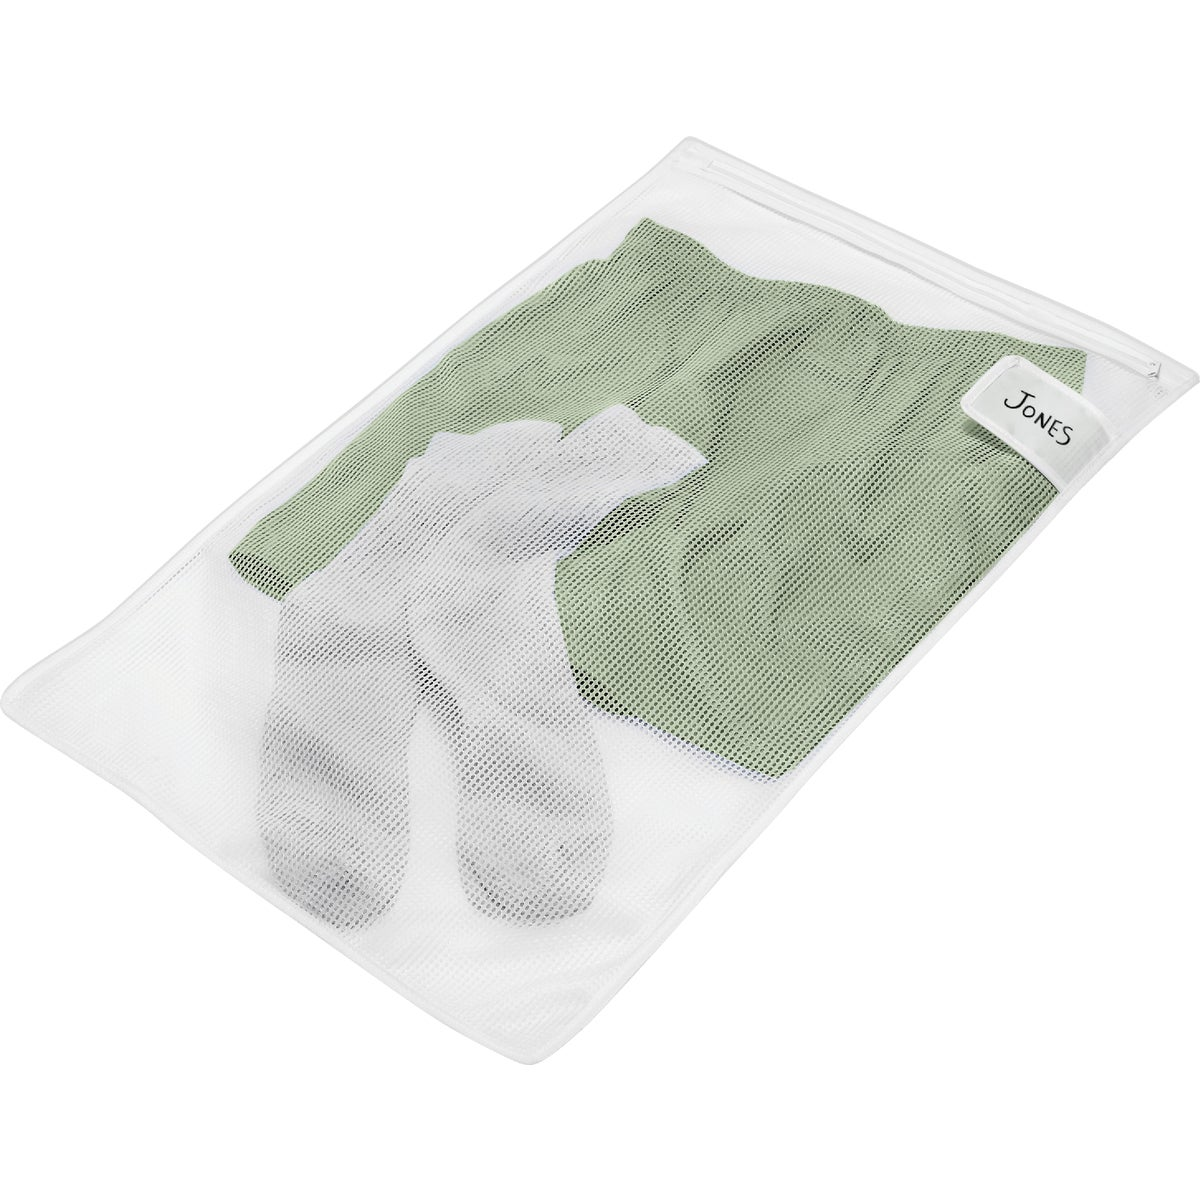 SWEATER BAG - 1220071 by Homz  Seymour